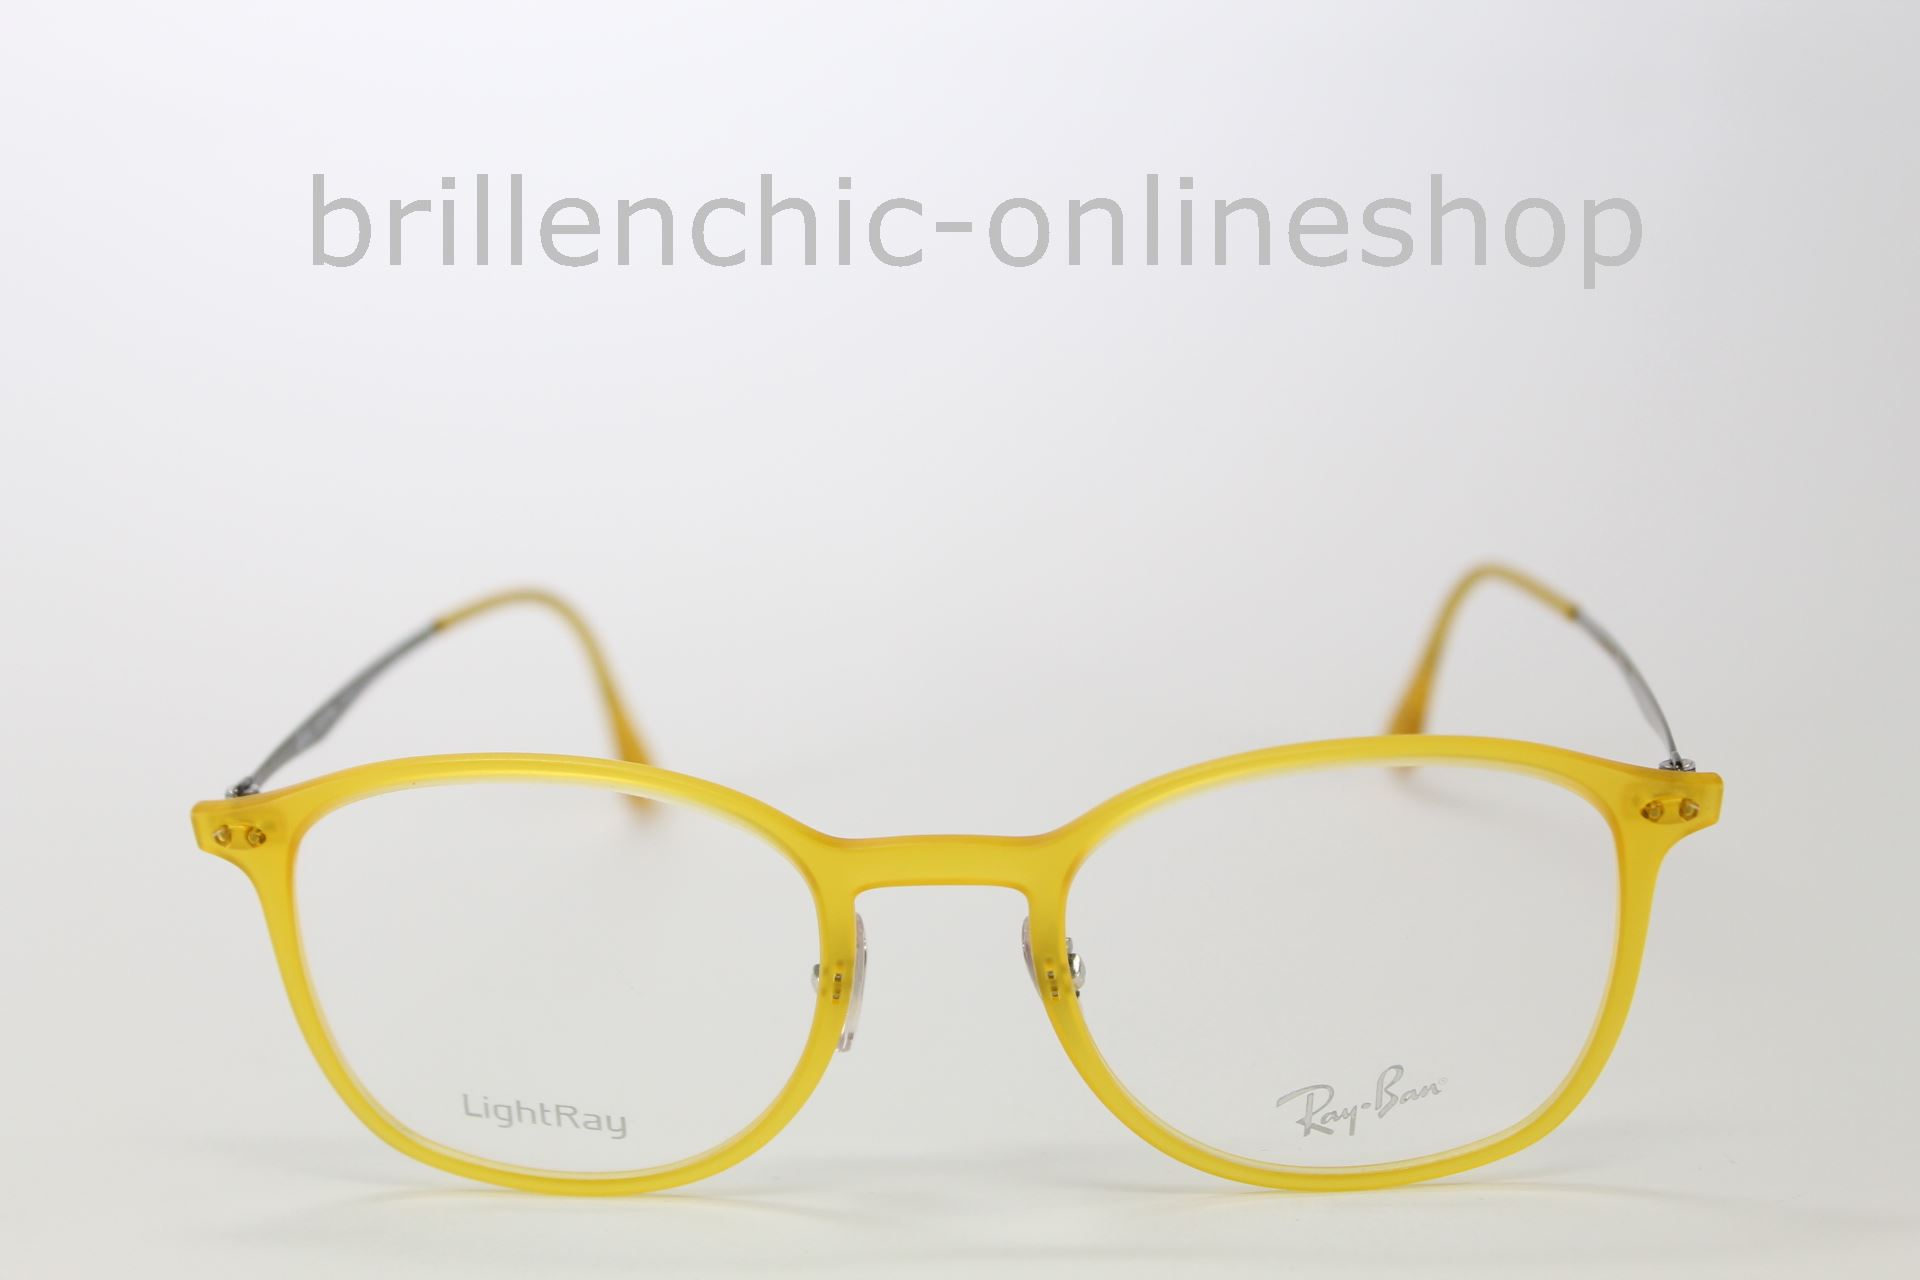 d6e856232c Brillenchic-onlineshop in Berlin - Ray Ban RB 7051 5519 LIGHT RAY